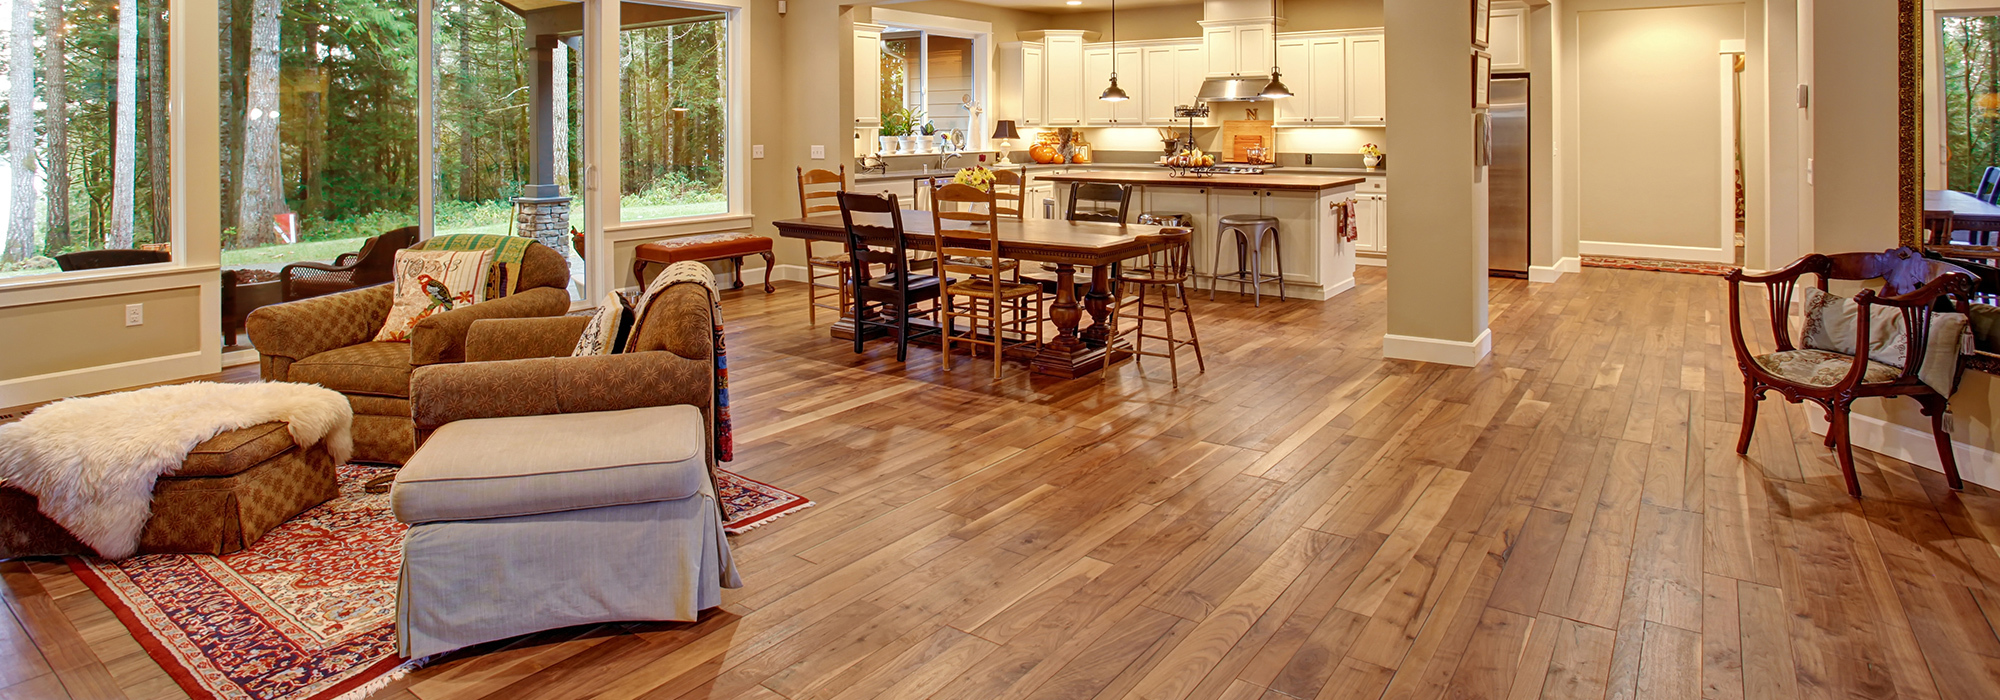 Wooden flooring done by experts in Bend, OR